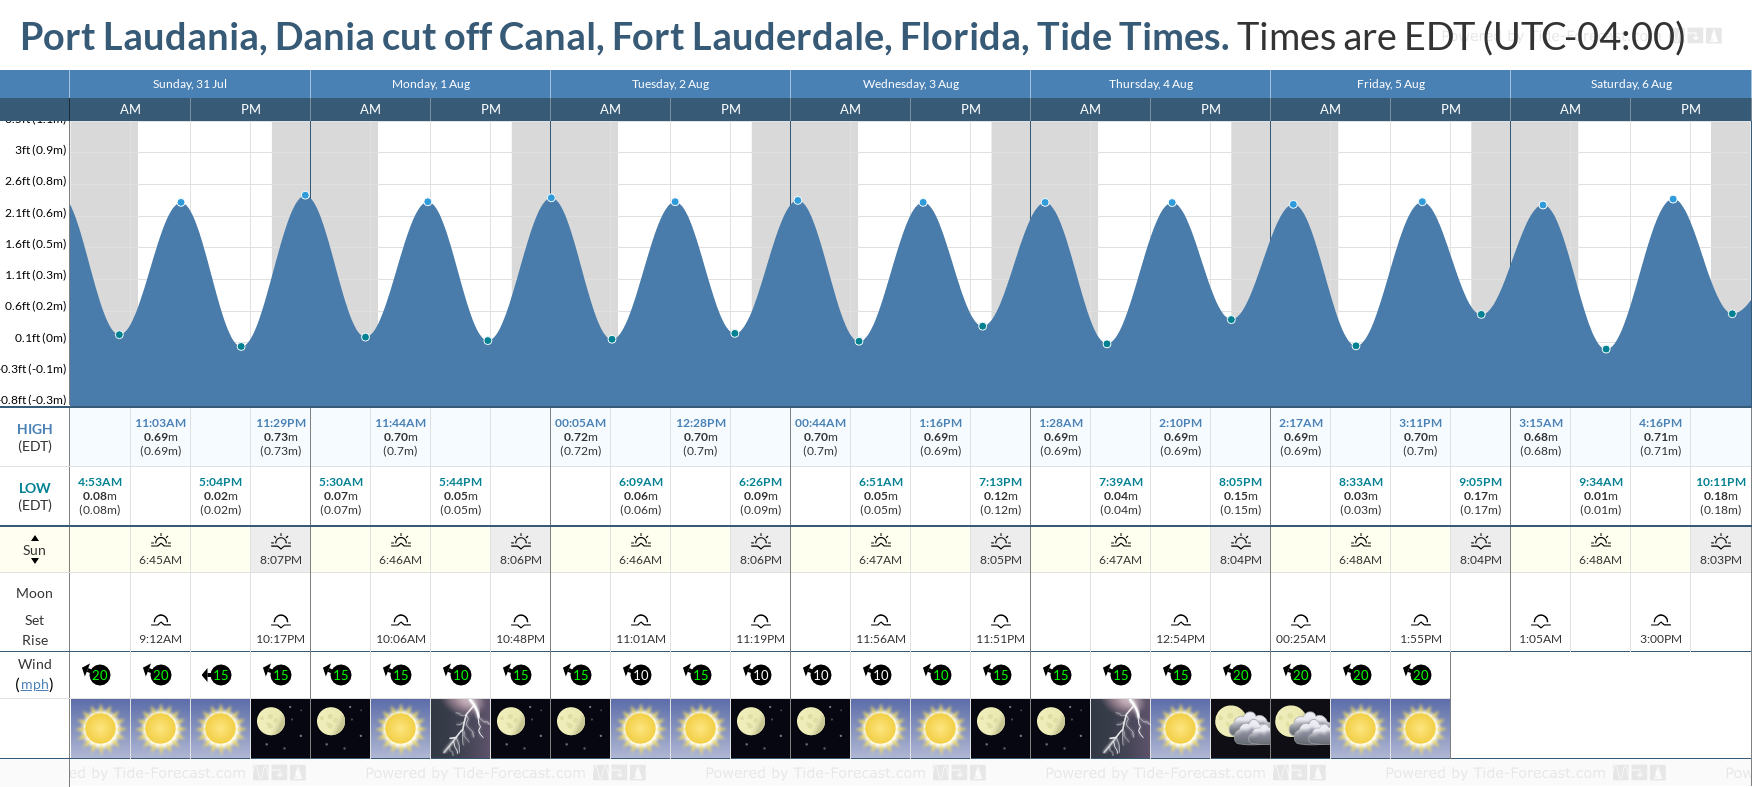 Port Laudania, Dania cut off Canal, Fort Lauderdale, Florida Tide Chart including high and low tide tide times for the next 7 days